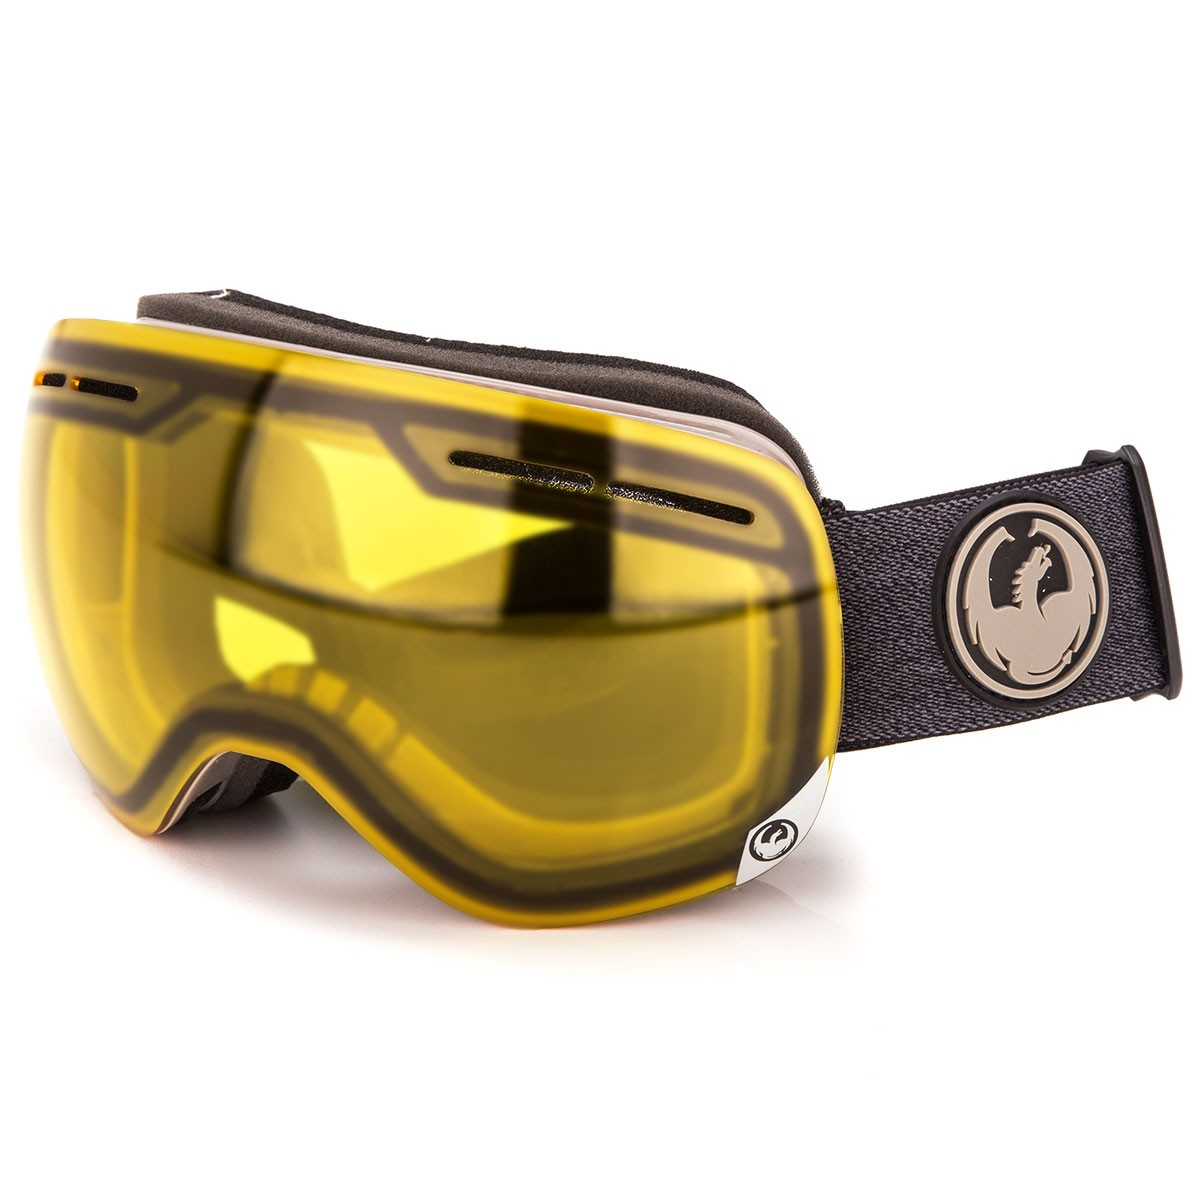 Dragon X1s Snowboard Goggles - Verse/Transition Yellow